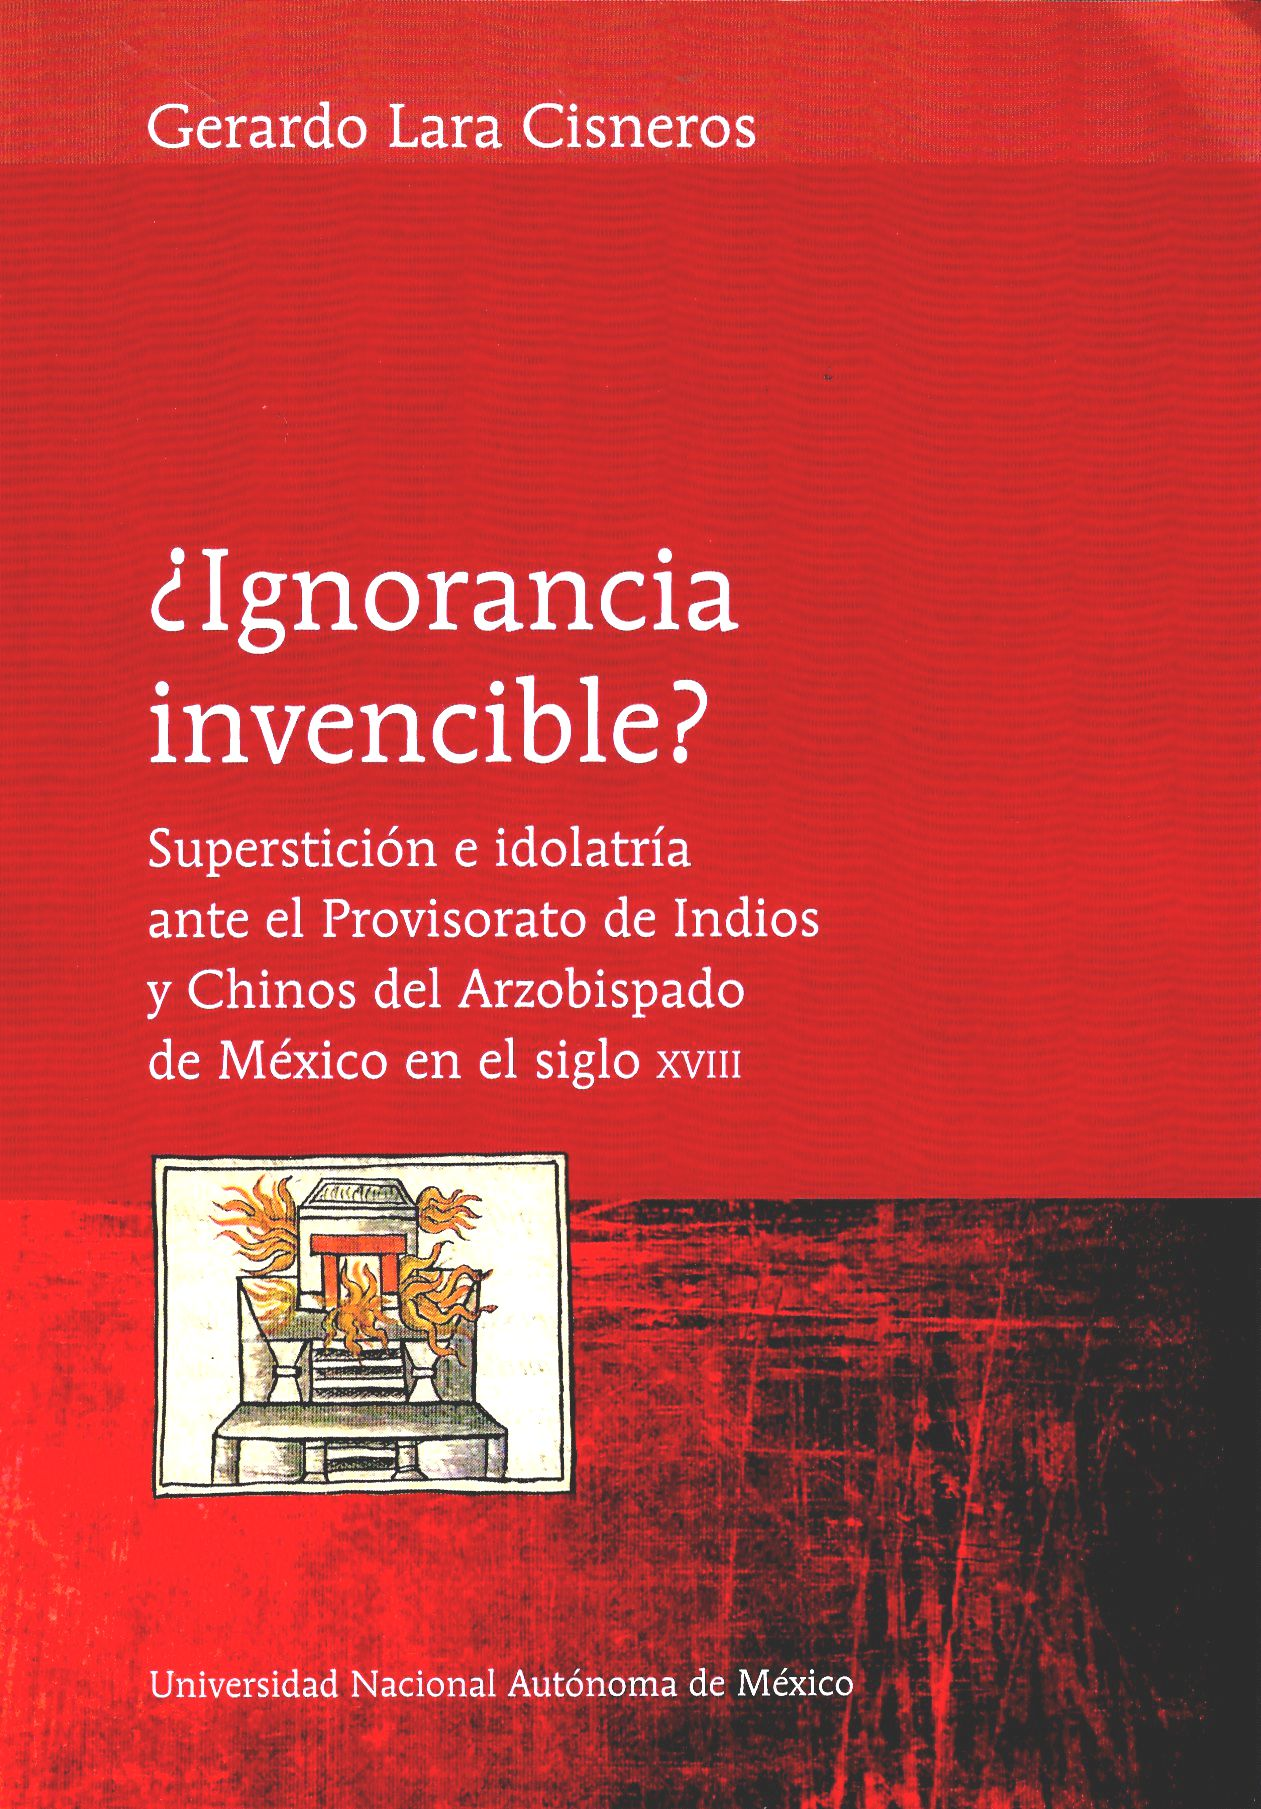 ¿Ignorancia invencible?